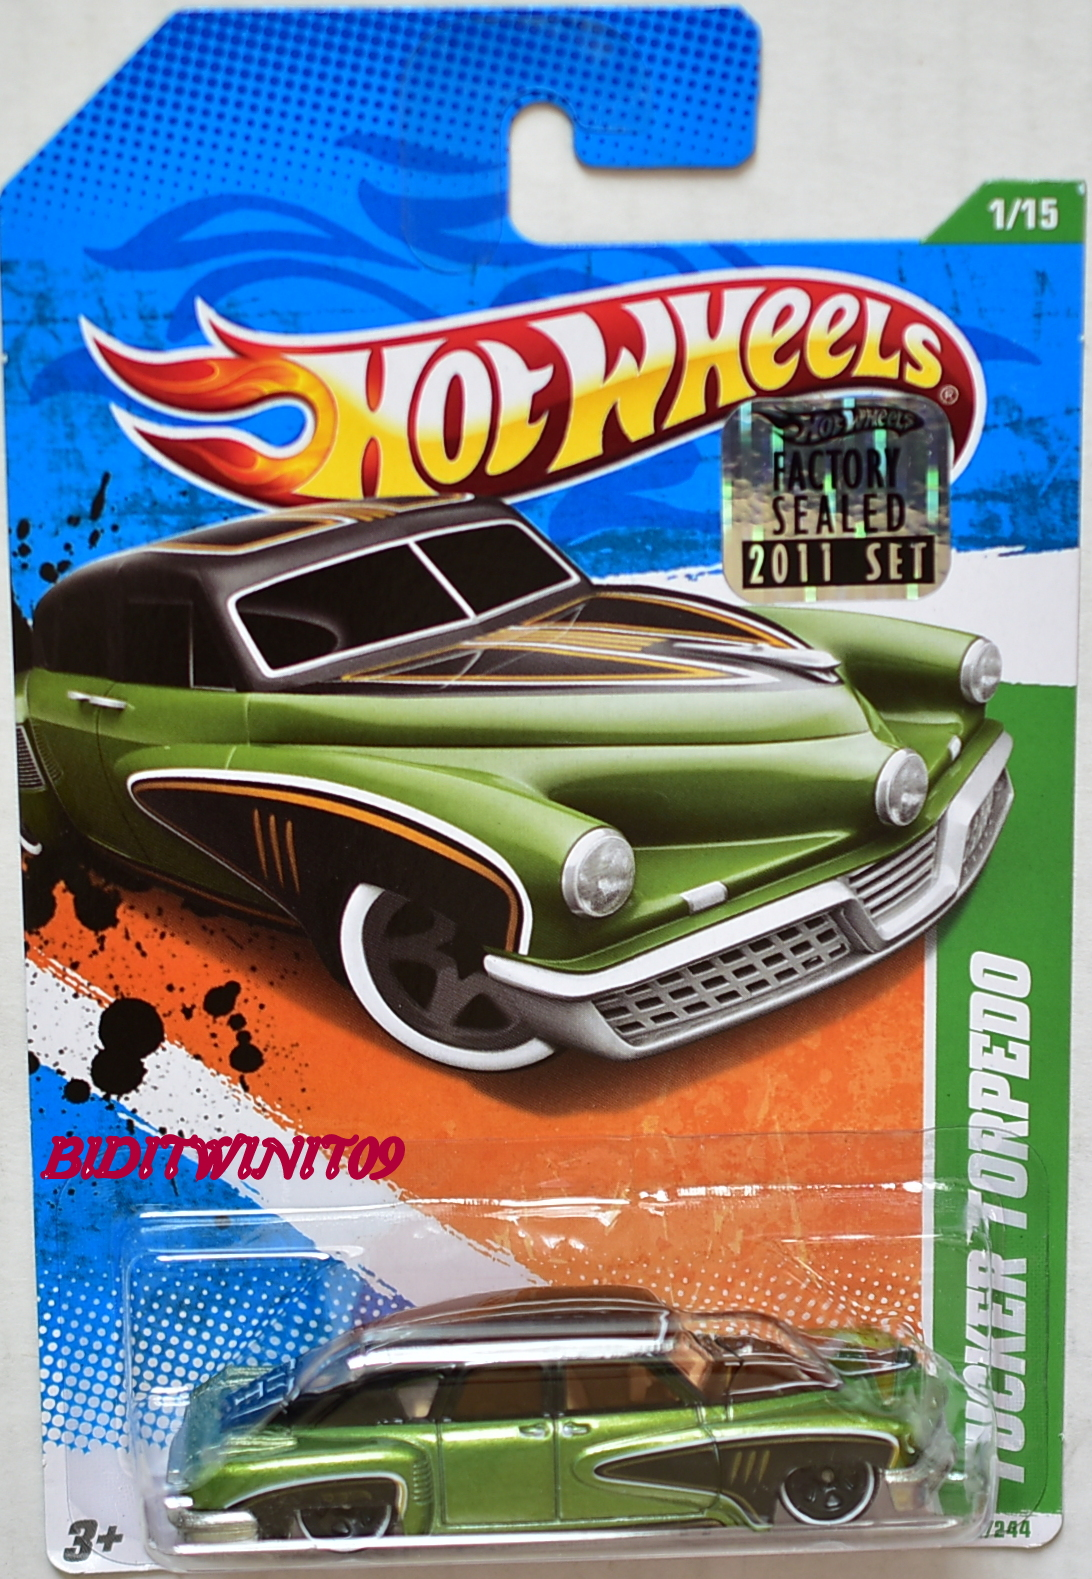 HOT WHEELS 2011 REGULAR TREASURE HUNT TUCKER TORPEDO FACTORY SEALED - Click Image to Close